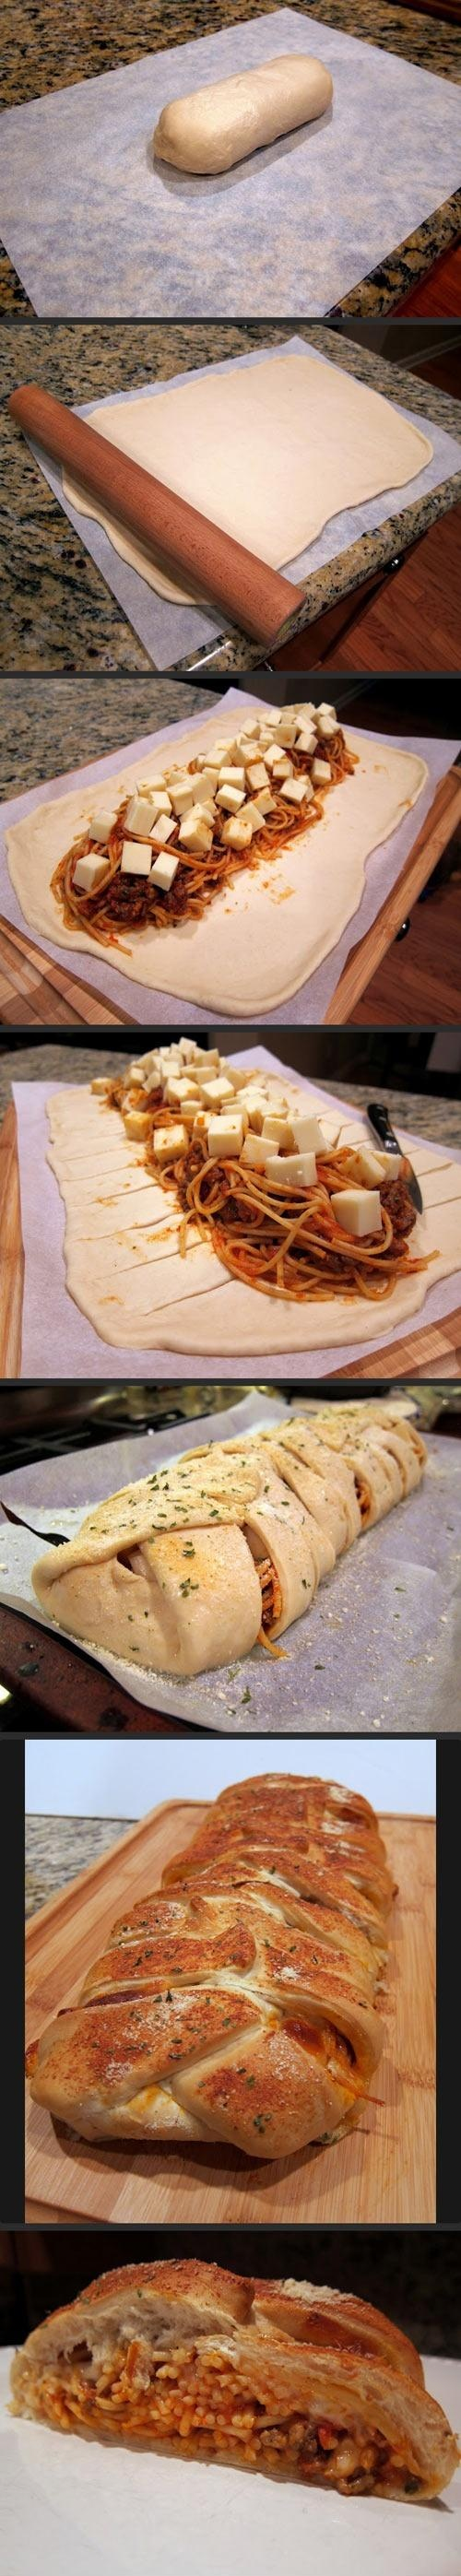 I wish I had the original link for this! It looks very much like a yummy spaghetti Wellington